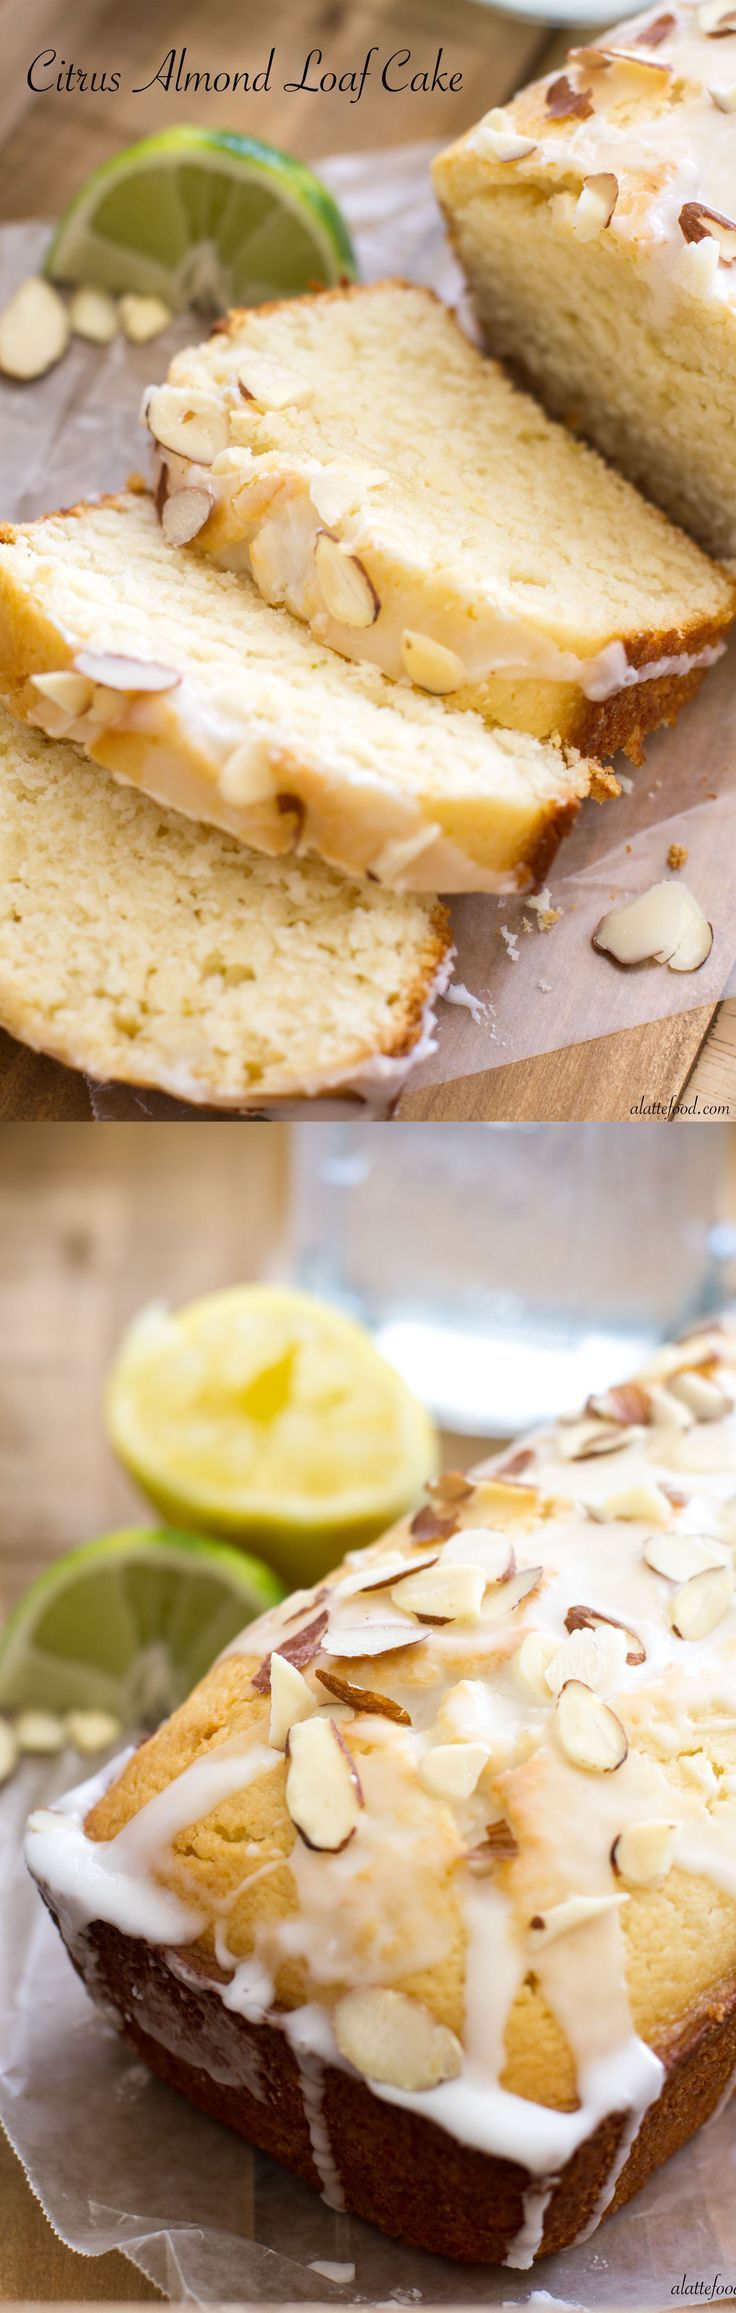 Citrus Almond Loaf Cake   Lemons and limes make up this delicious cake!   www.alattefood.com